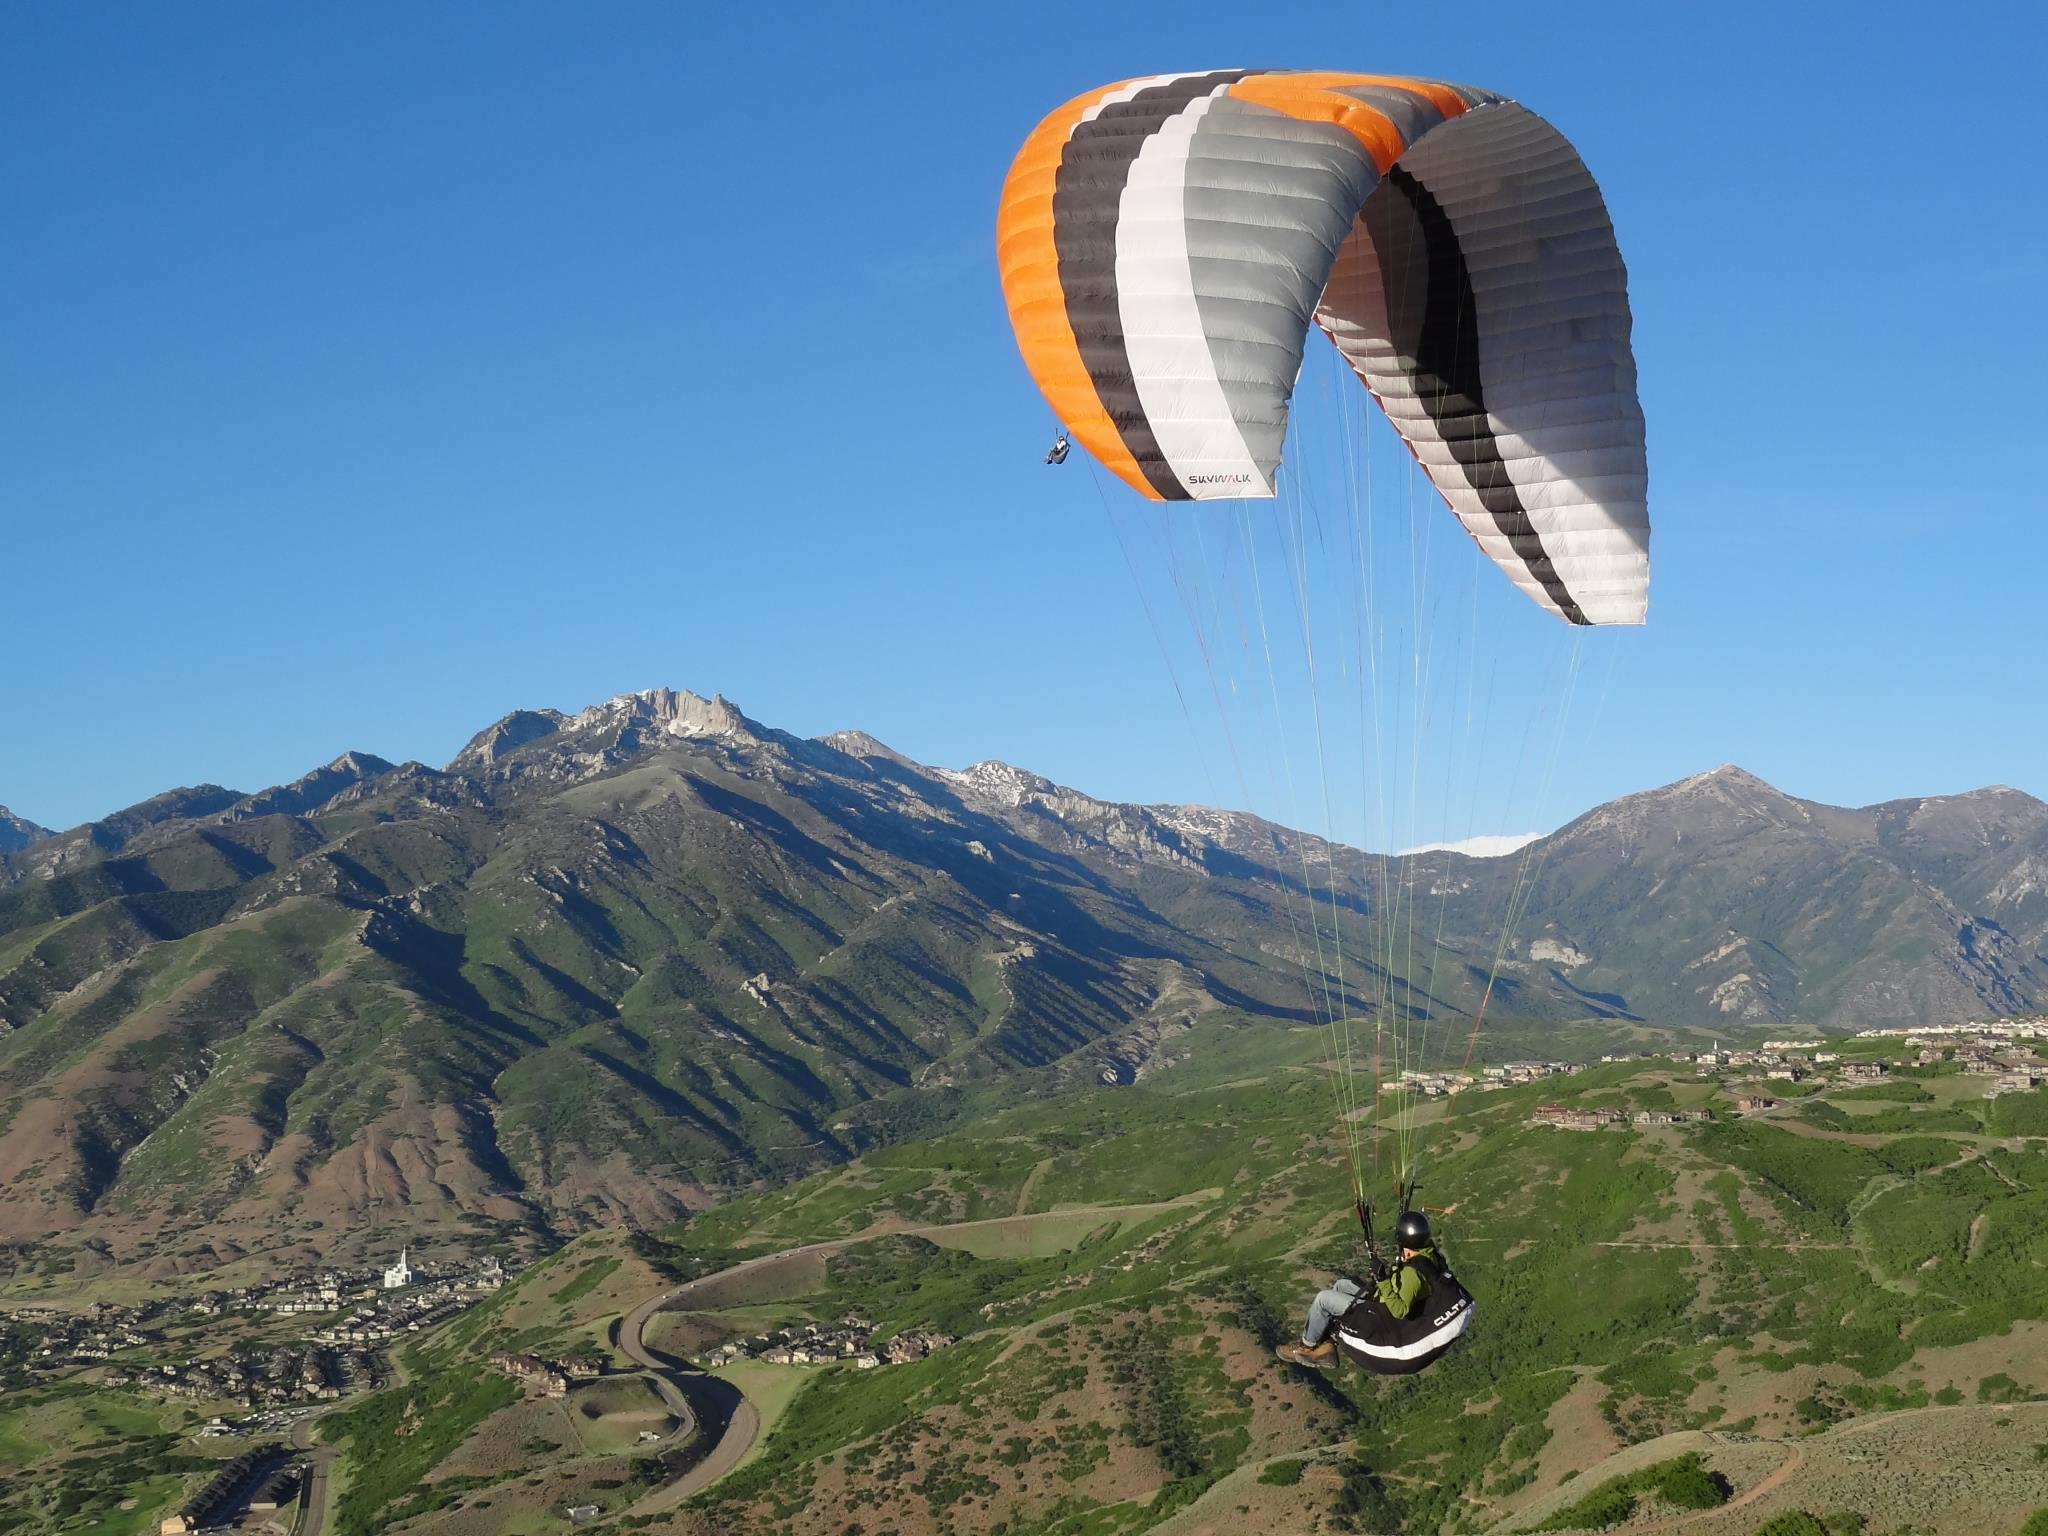 Utah Hang Gliding And Paragliding Association This Is Freedom